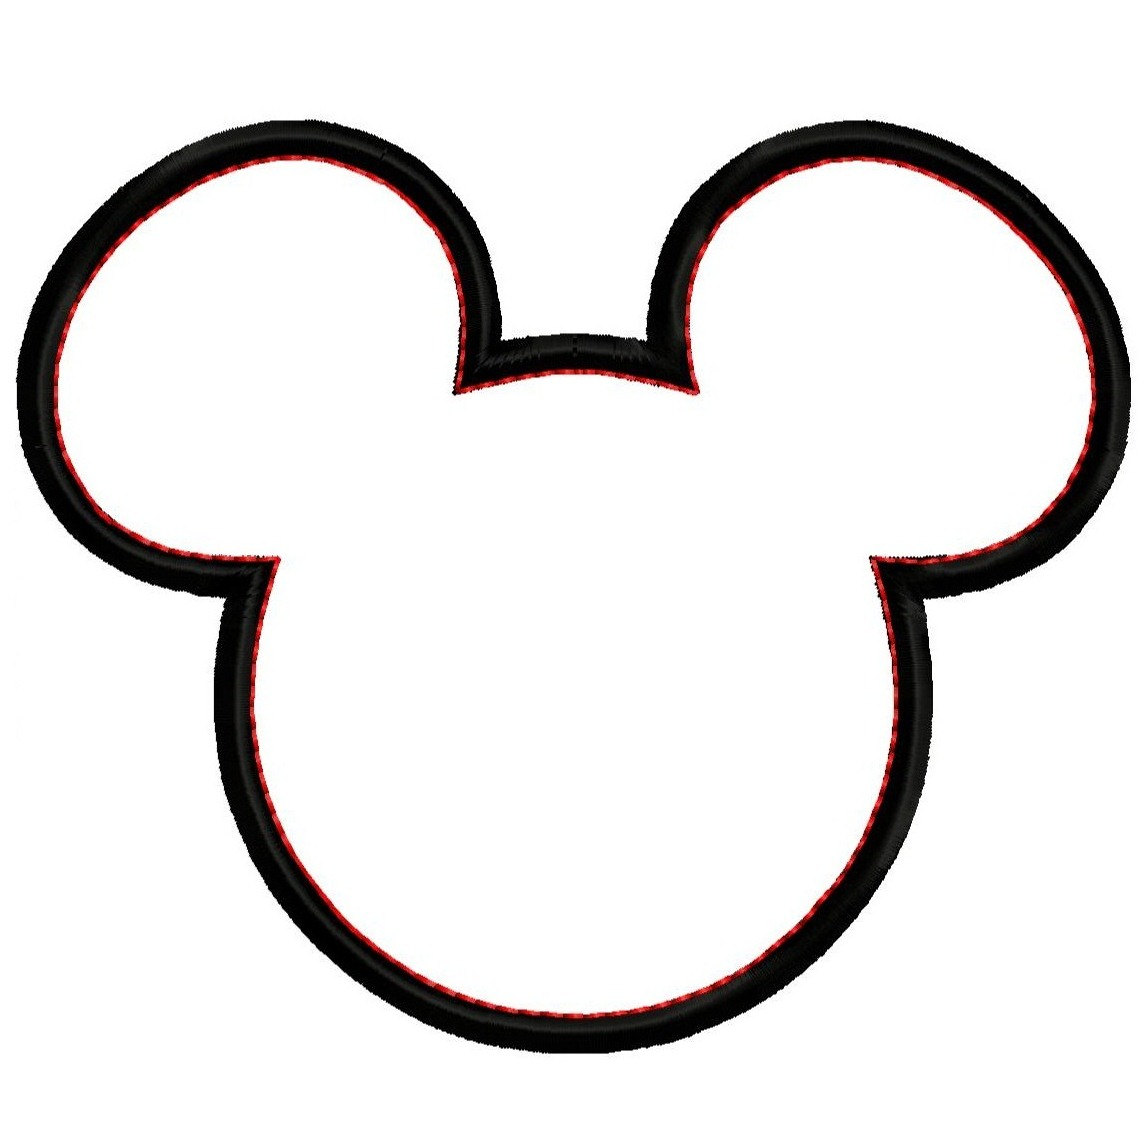 Mickey Mouse Head Silhouette Clipart Panda Free Clipart Images